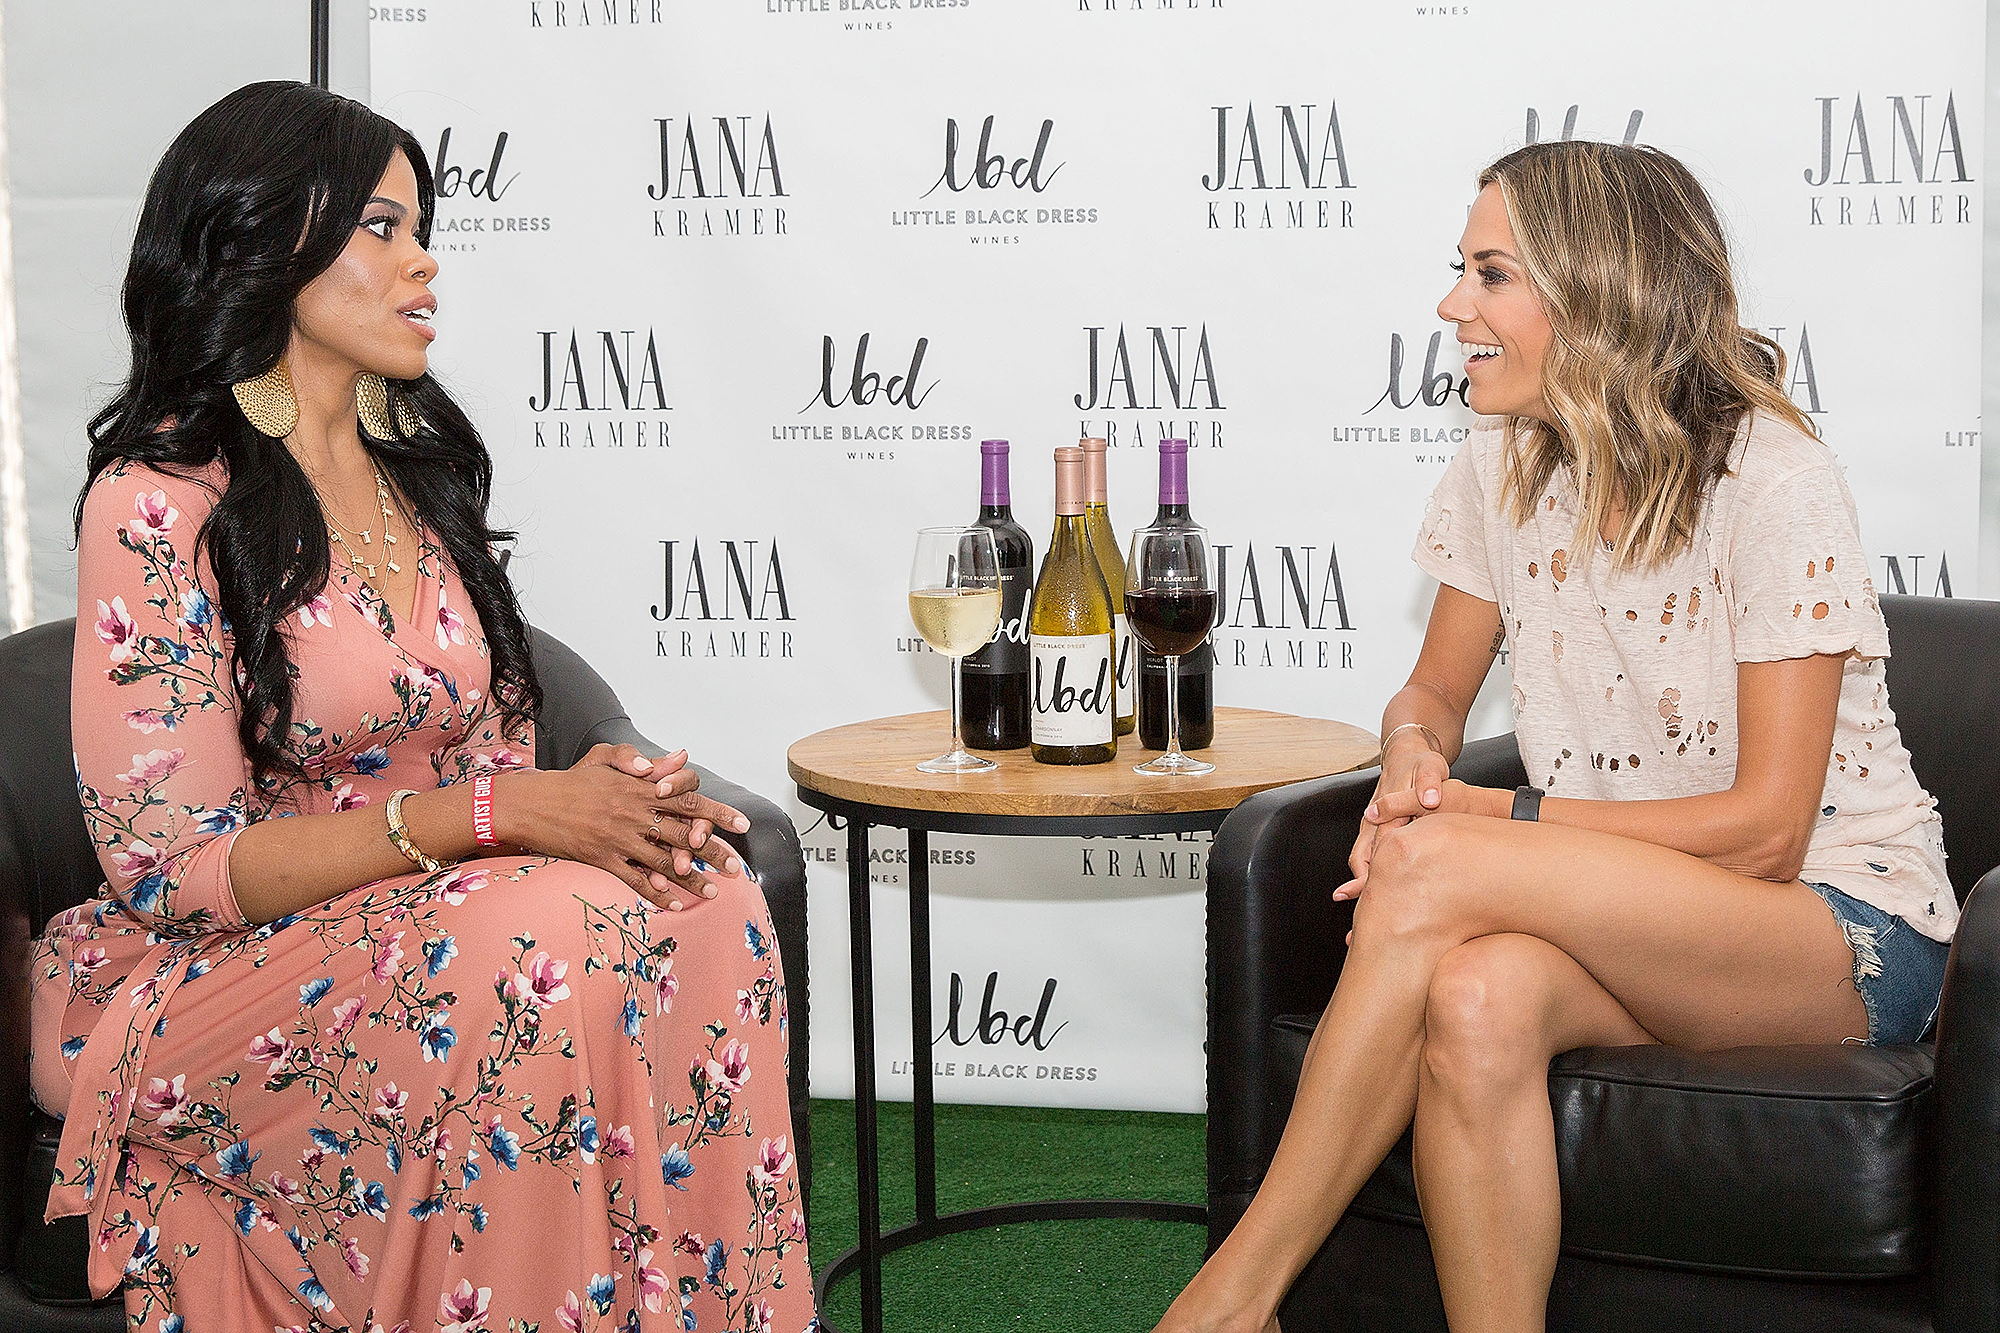 LBD Wines and LBD Wines Spokesperson Jana Kramer Host Mentoring Session with Dress for Success Client in Chicago